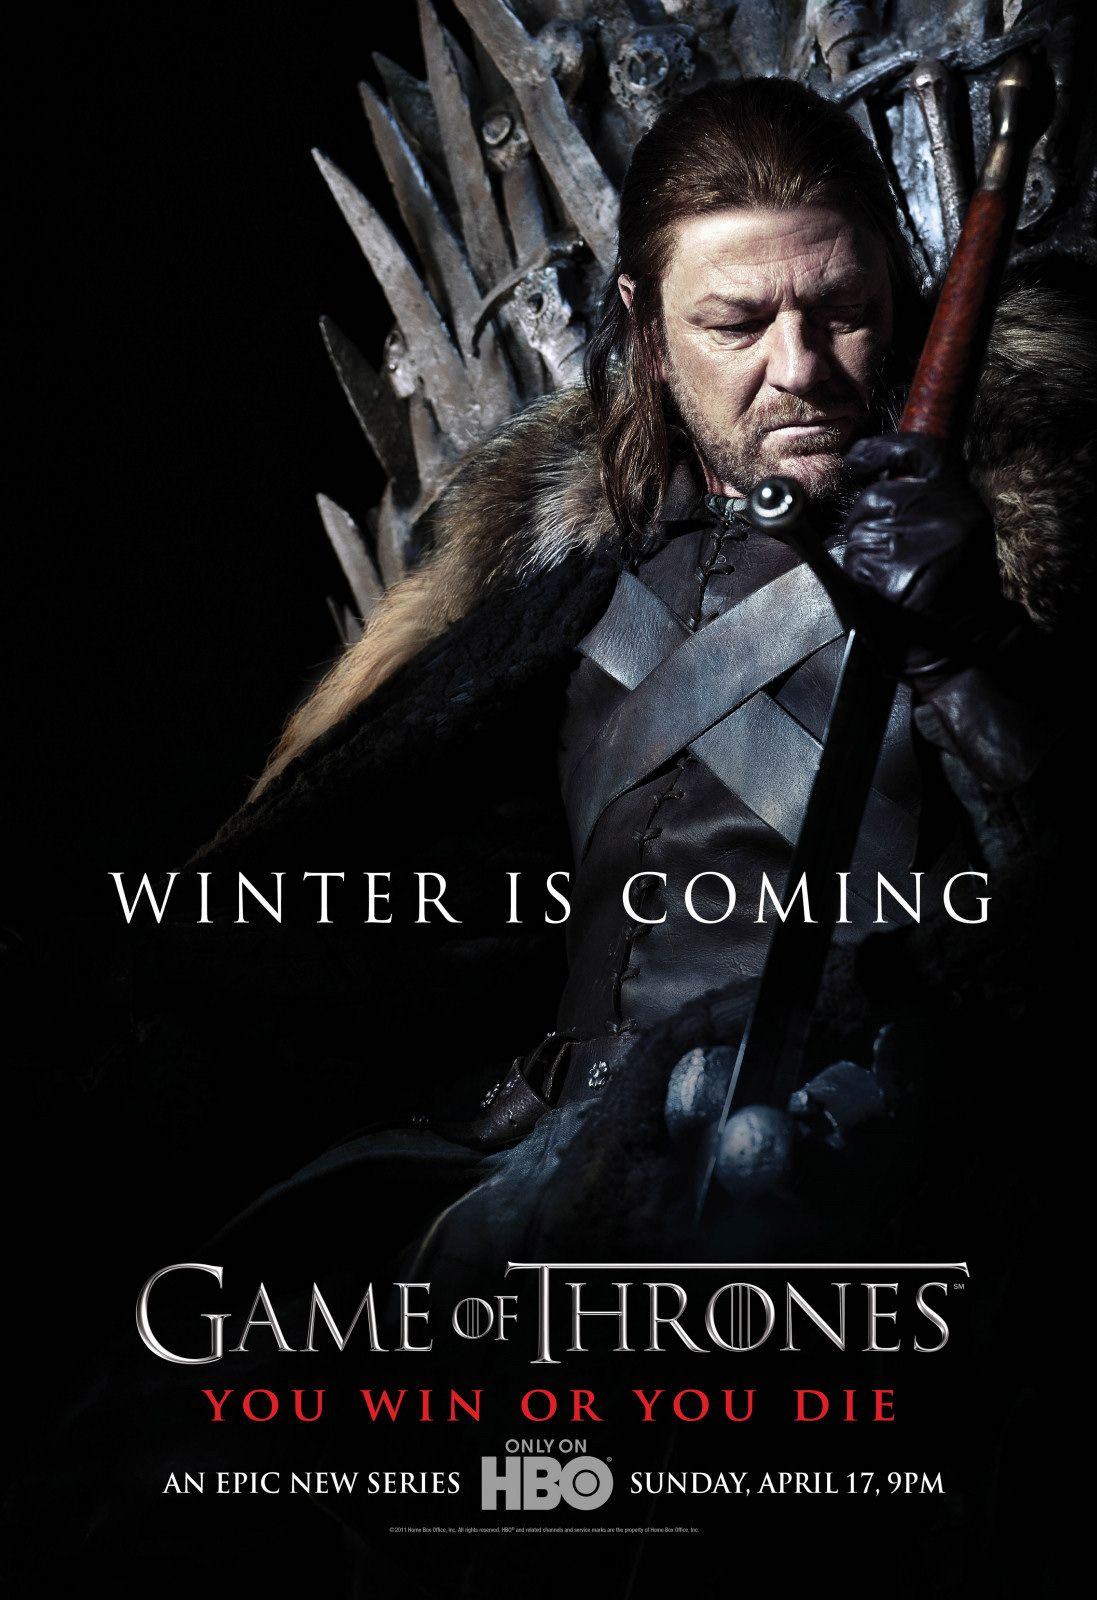 Risultati immagini per game of thrones season 1 poster